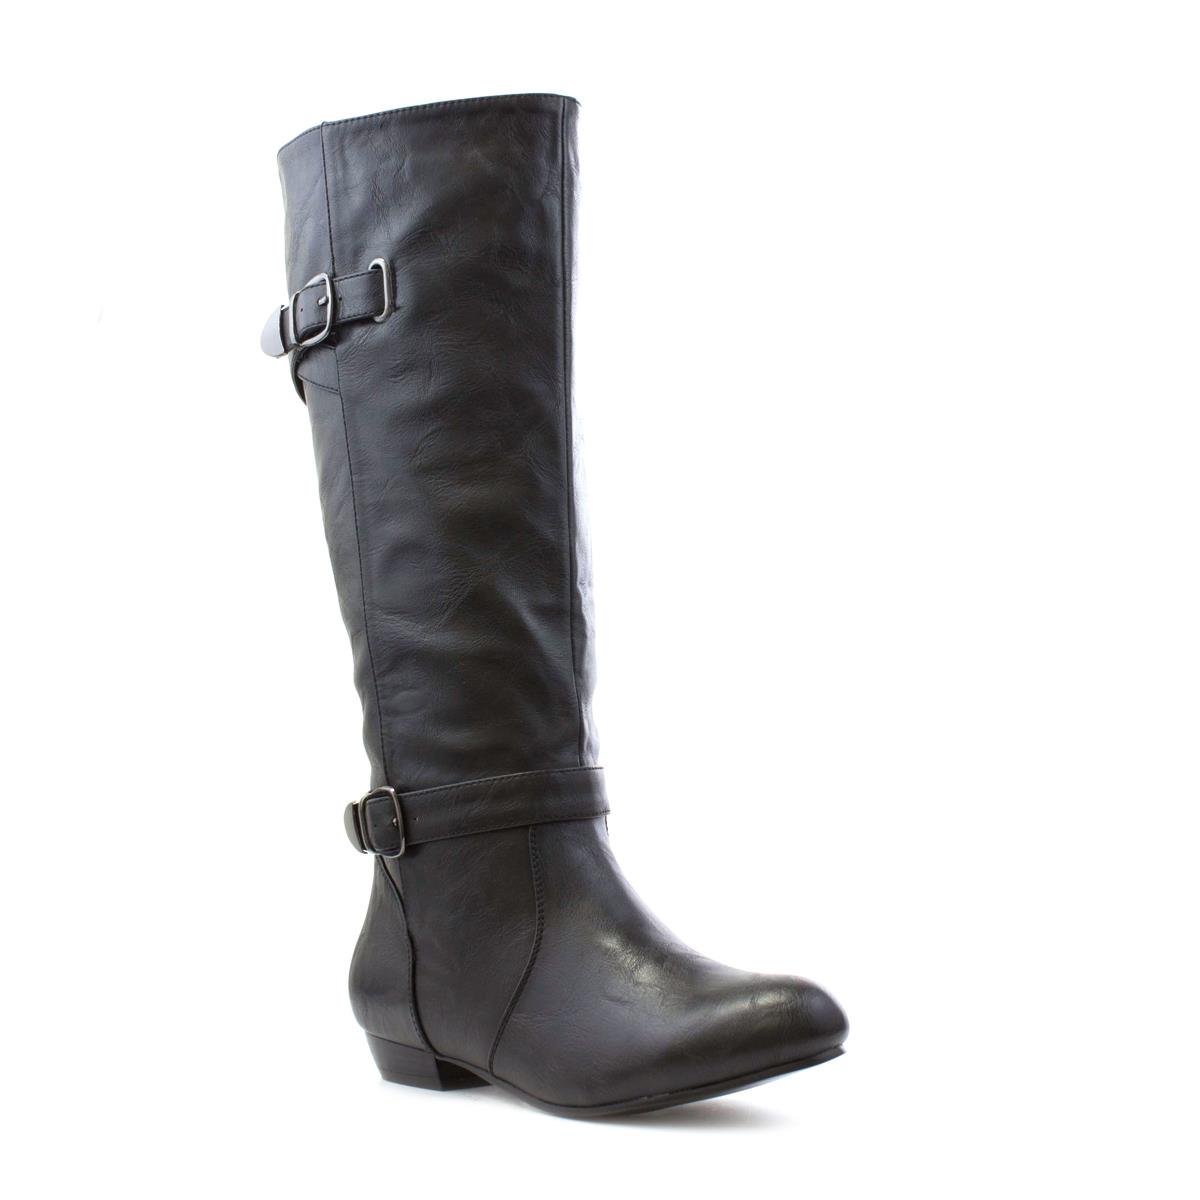 Lilley Womens Black Buckle Detail Ankle Boot-18640 exclusive photo